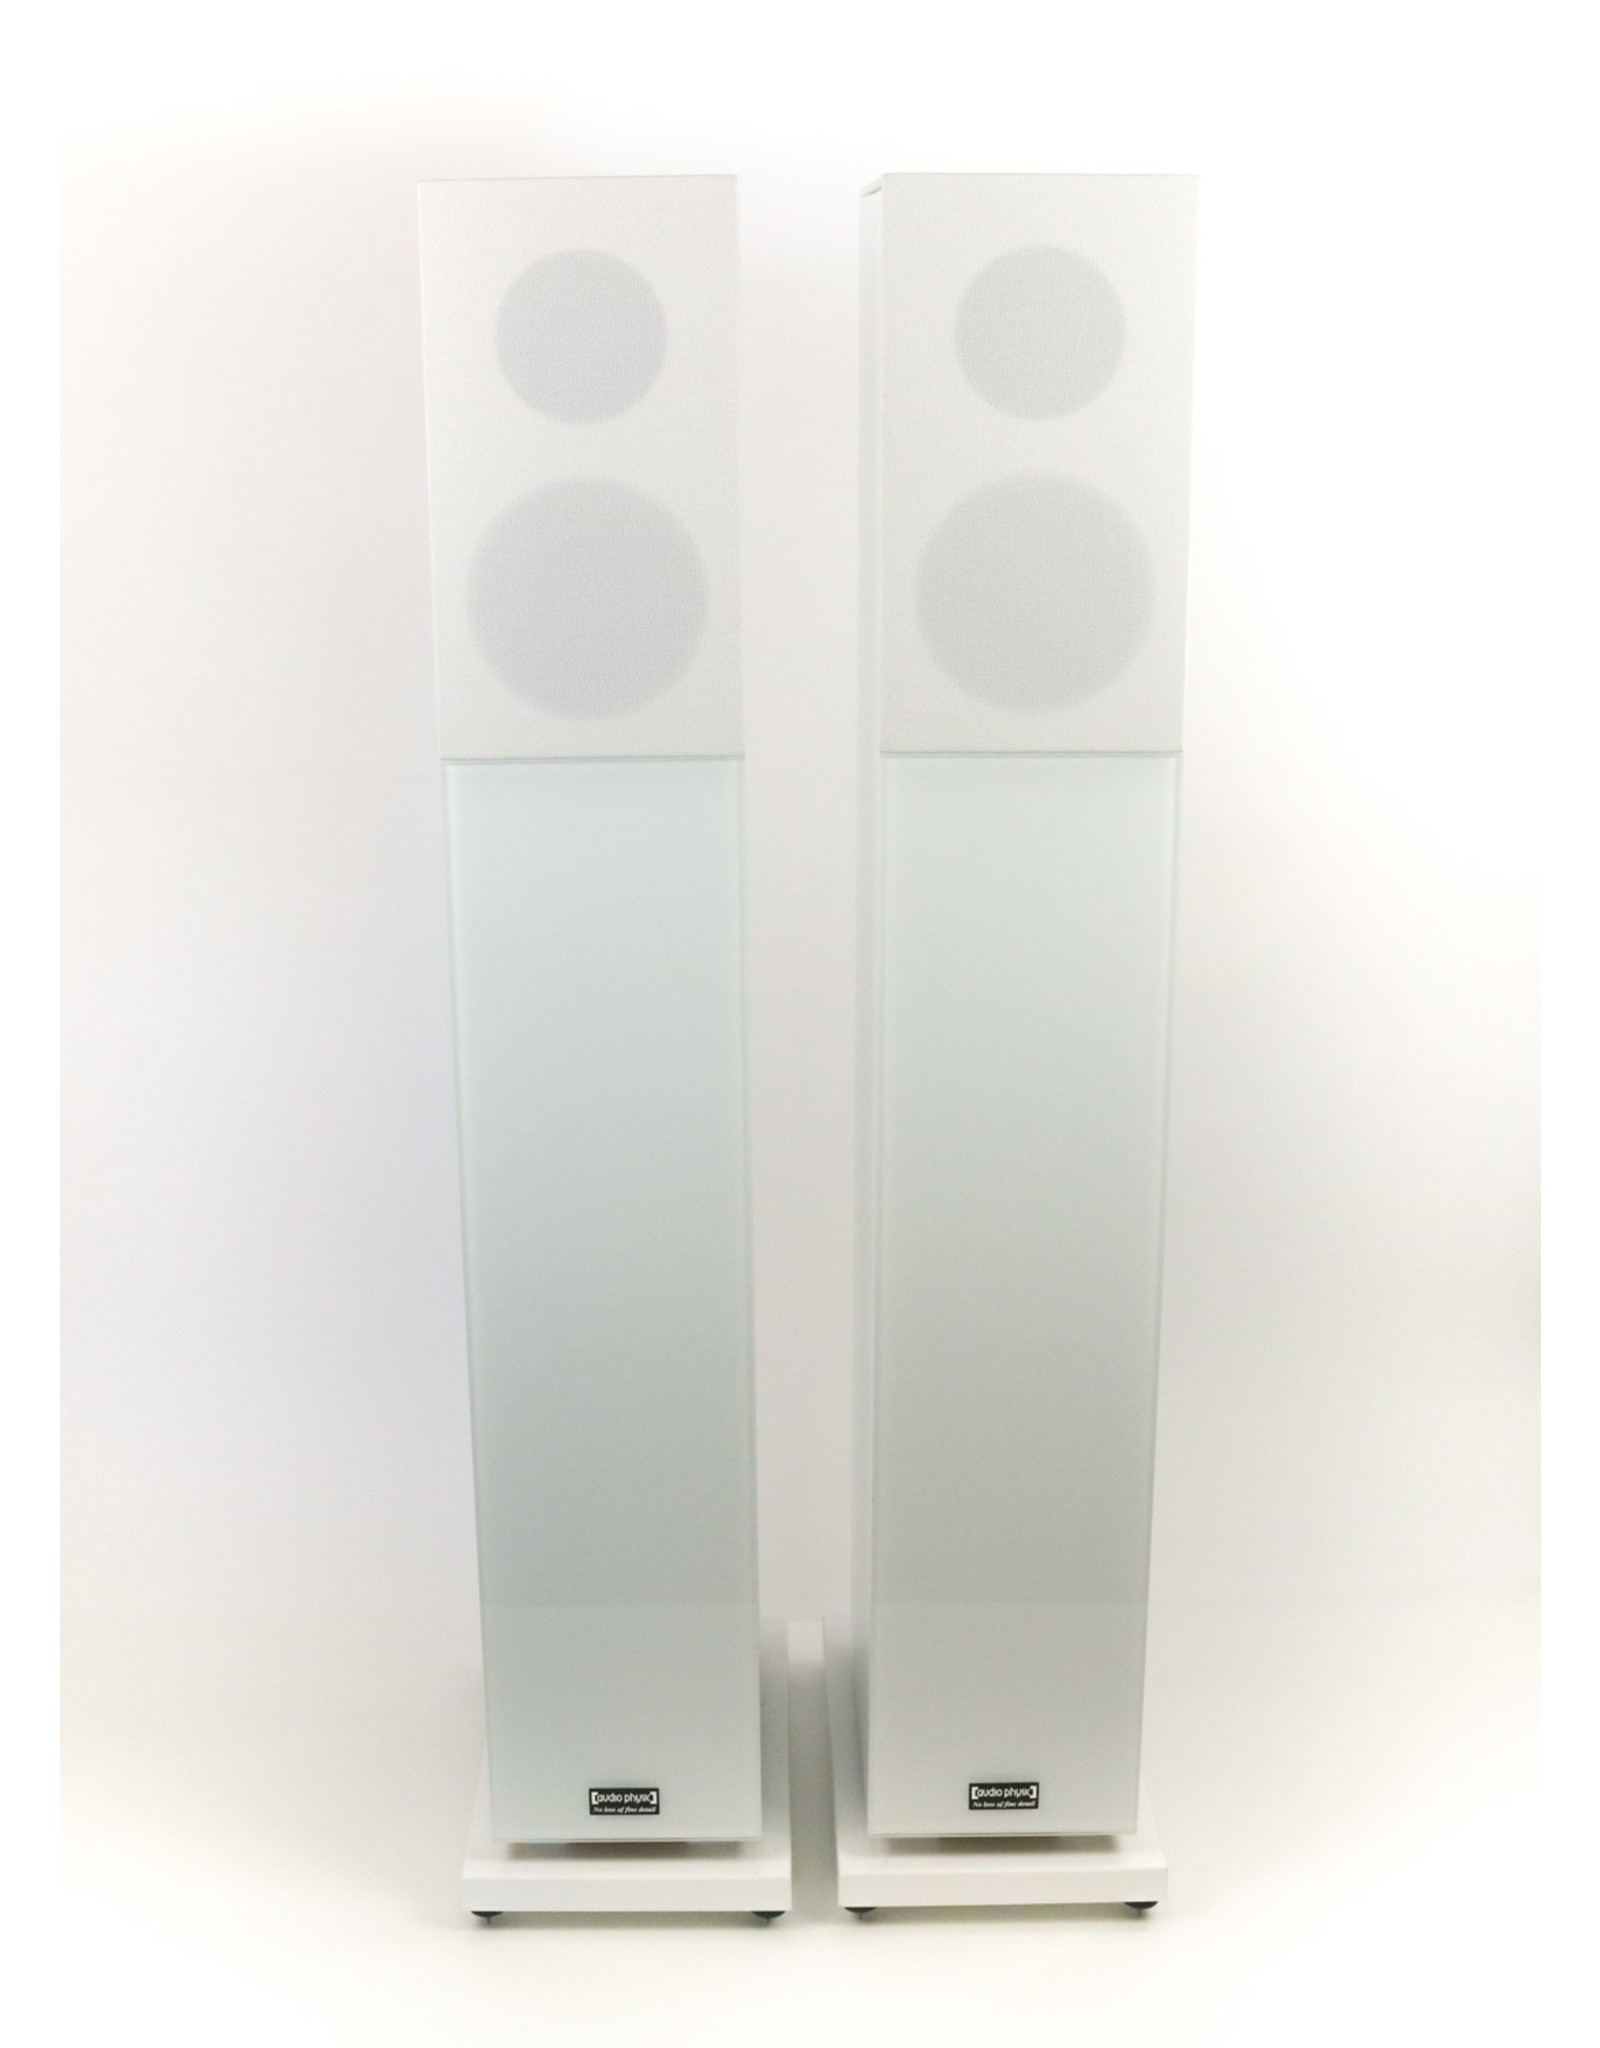 Audio Physic Audio Physic Classic 20 Floorstanding Speakers USED